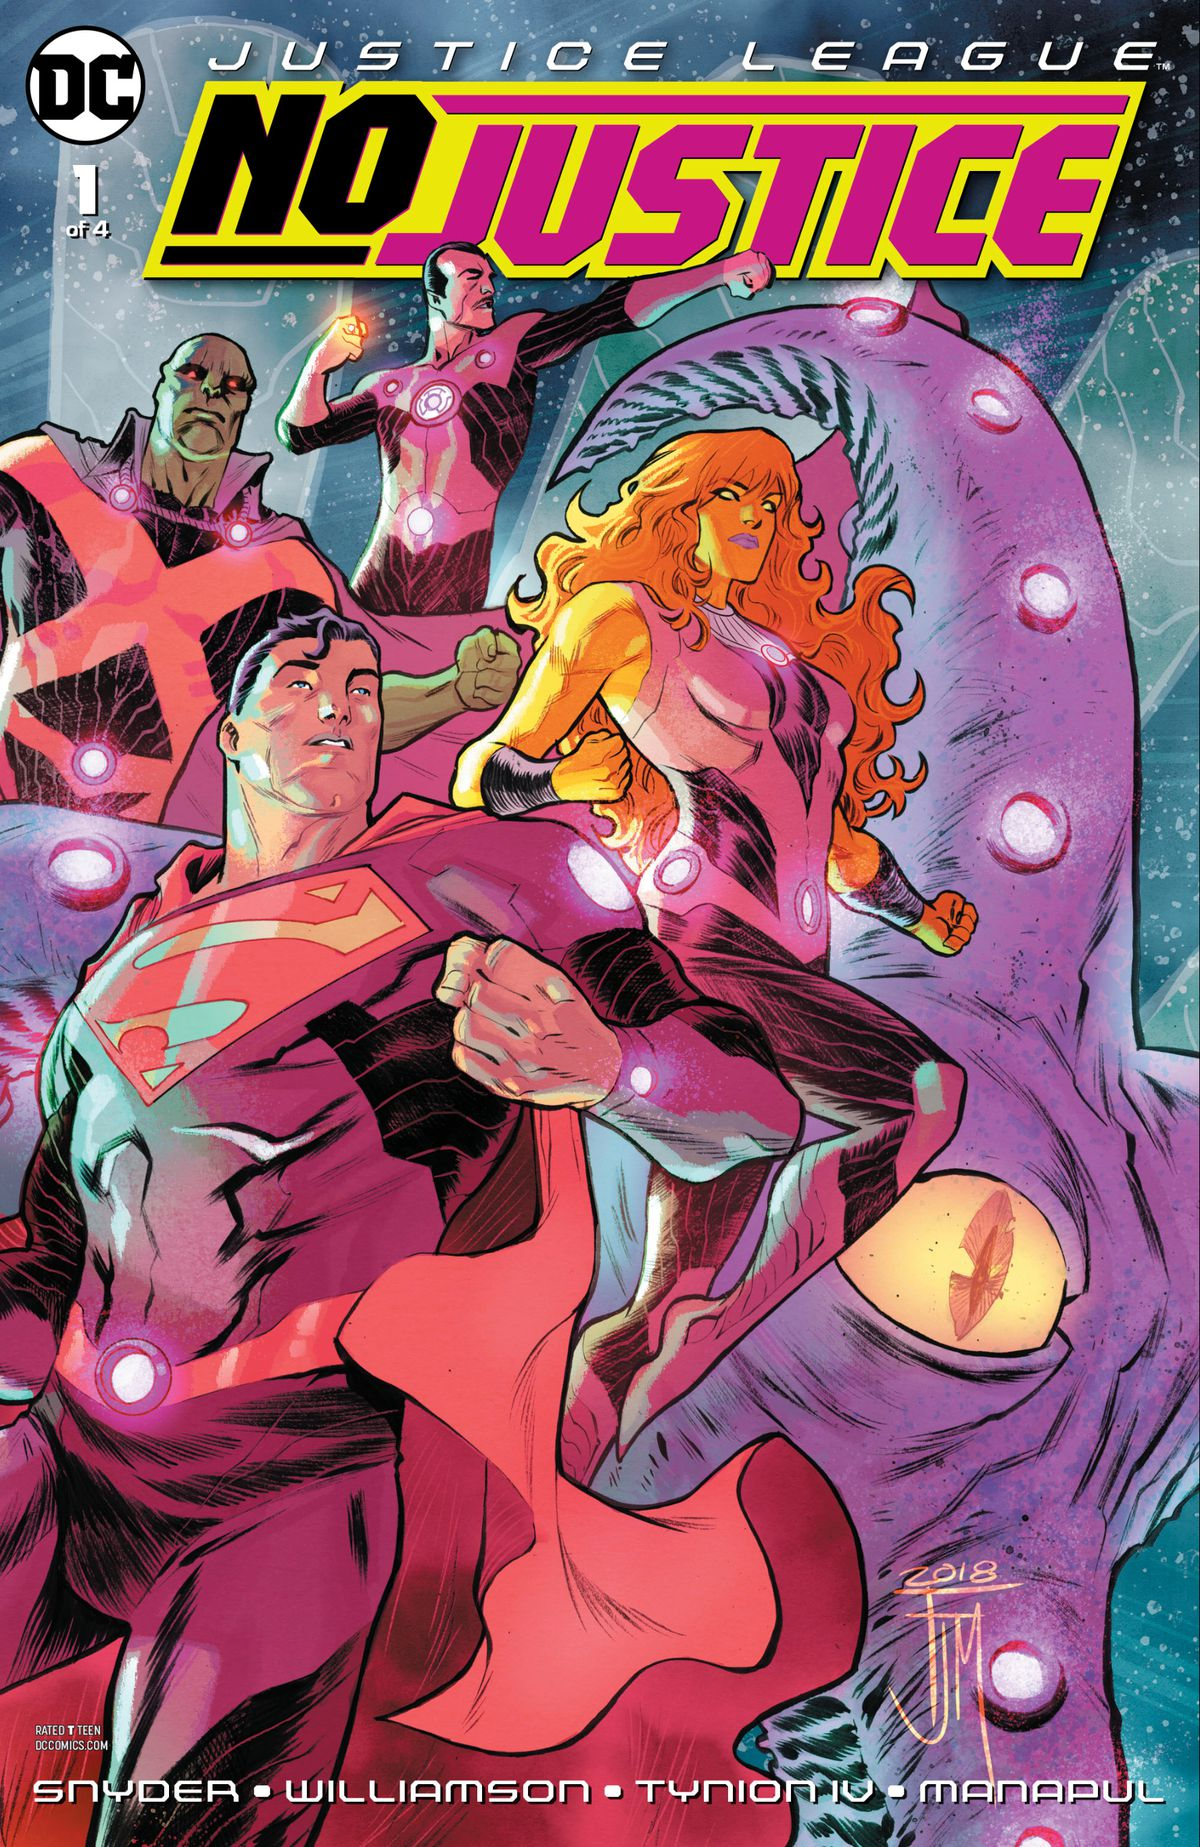 Superman, the Martian Manhunter, Sinestro, Starfire, and Starro the giant psychic alien starfish stand ready on the cover of No Justice #1, DC Comics (2018).